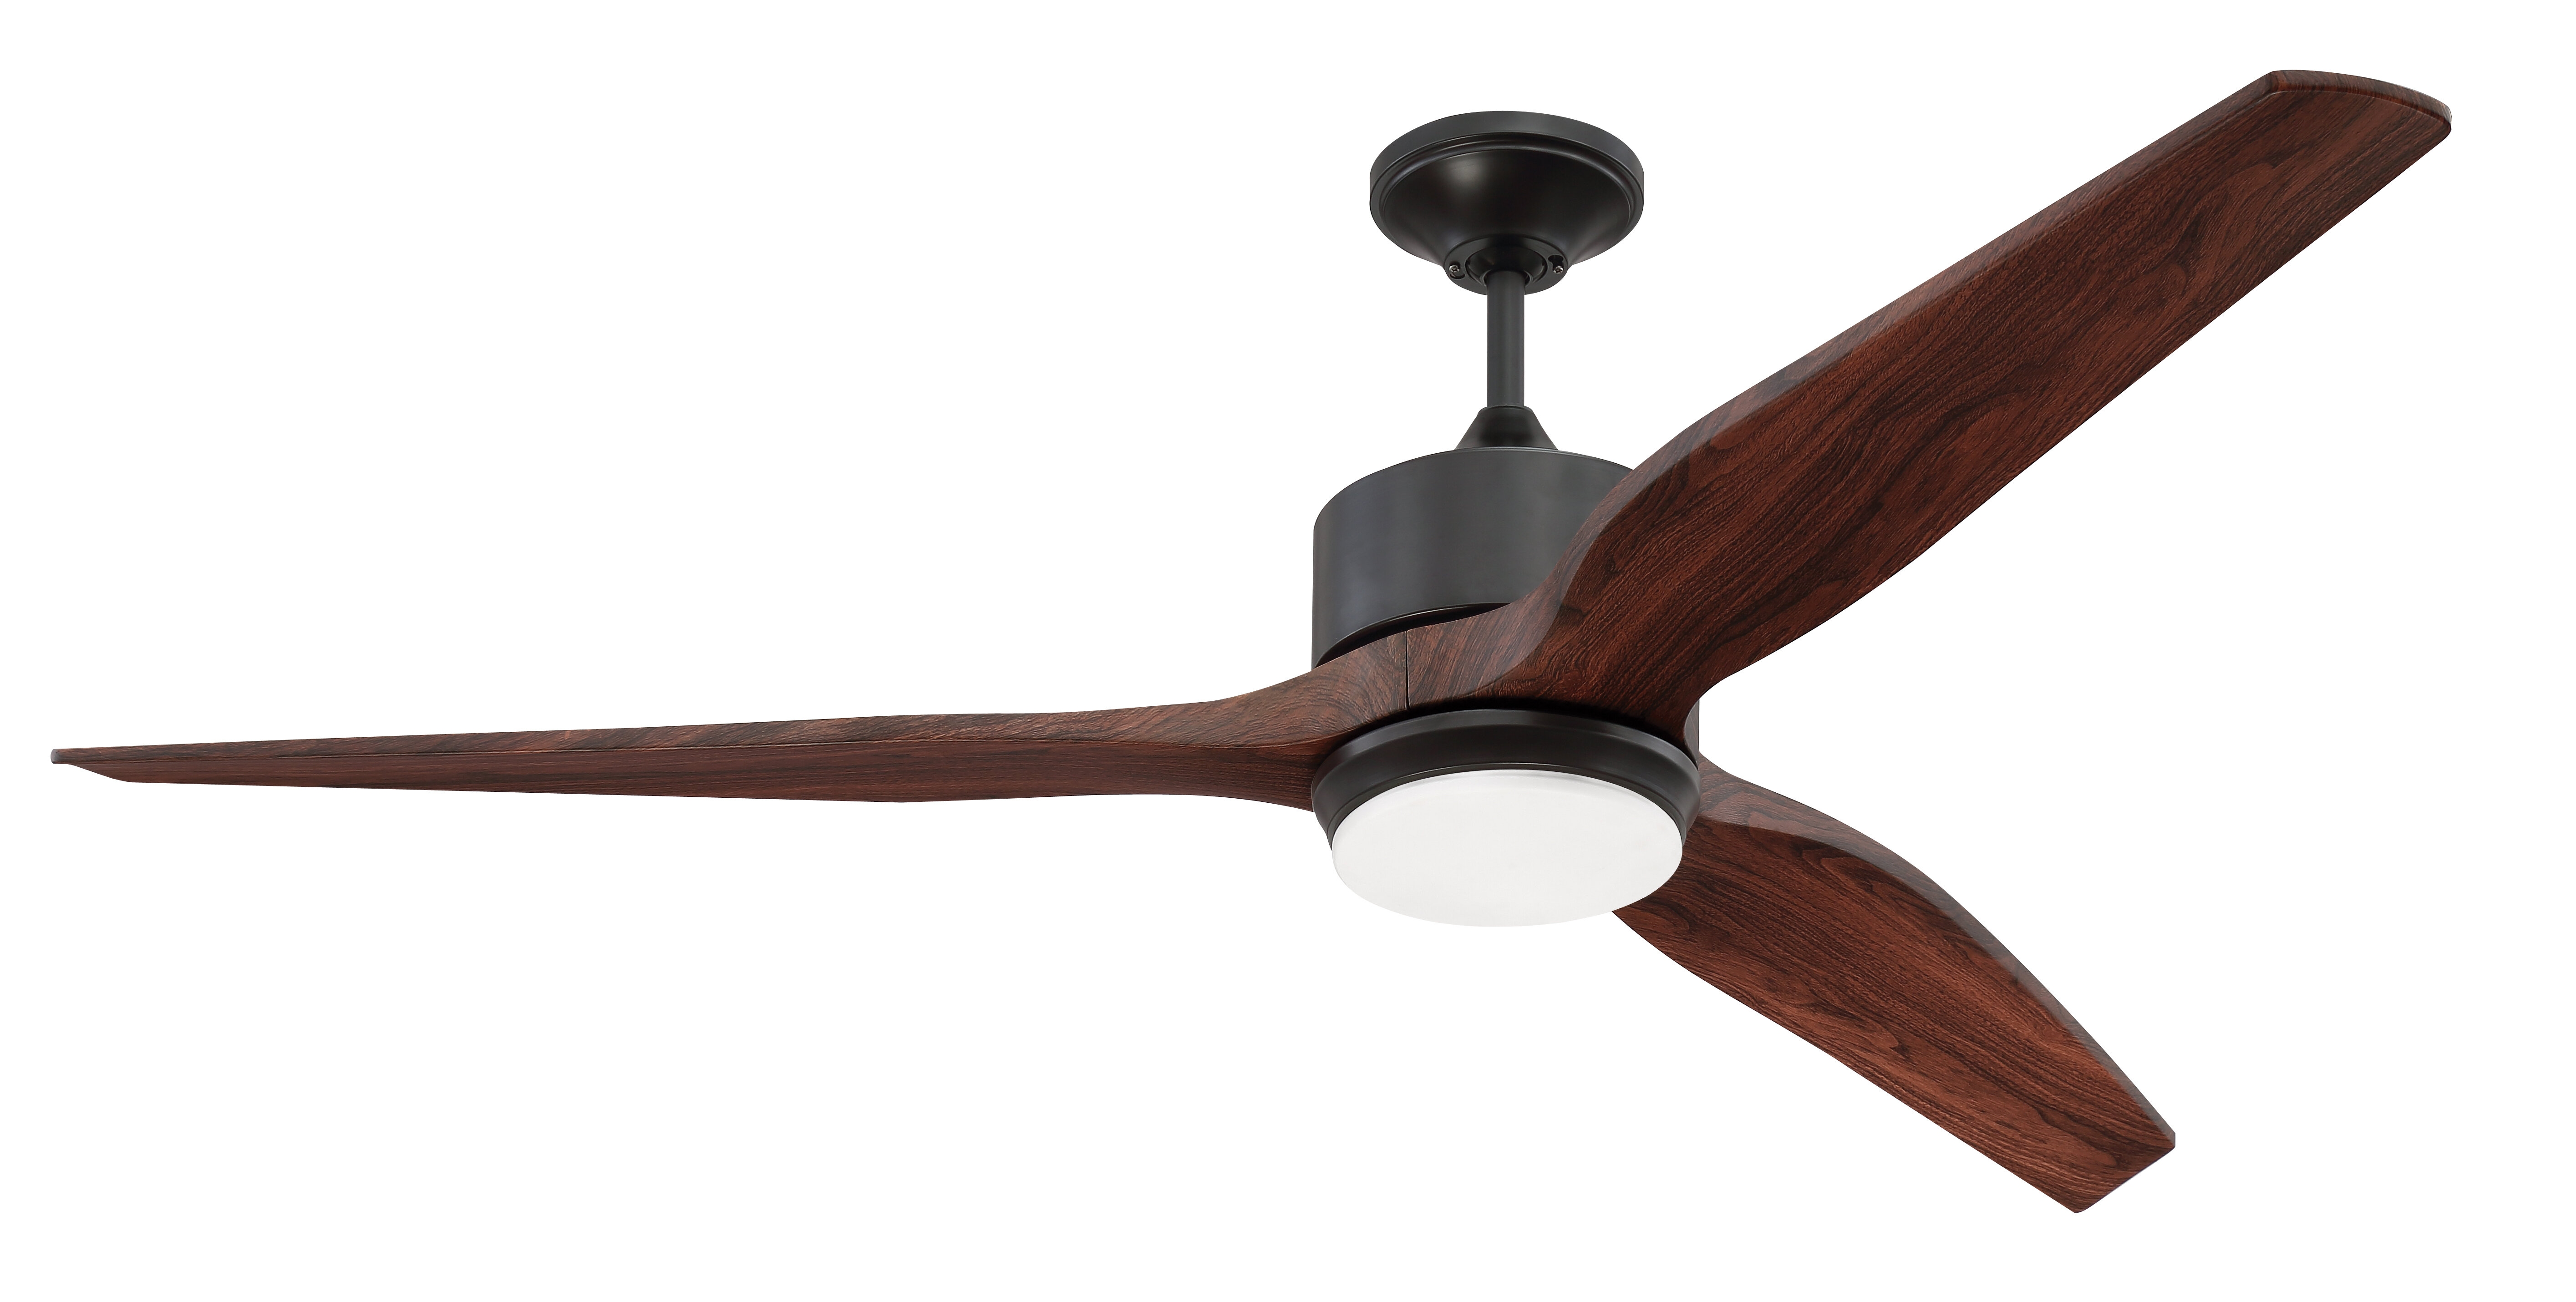 Industrial Style Oil Rubbed Bronze Ceiling Fans You Ll Love In 2021 Wayfair